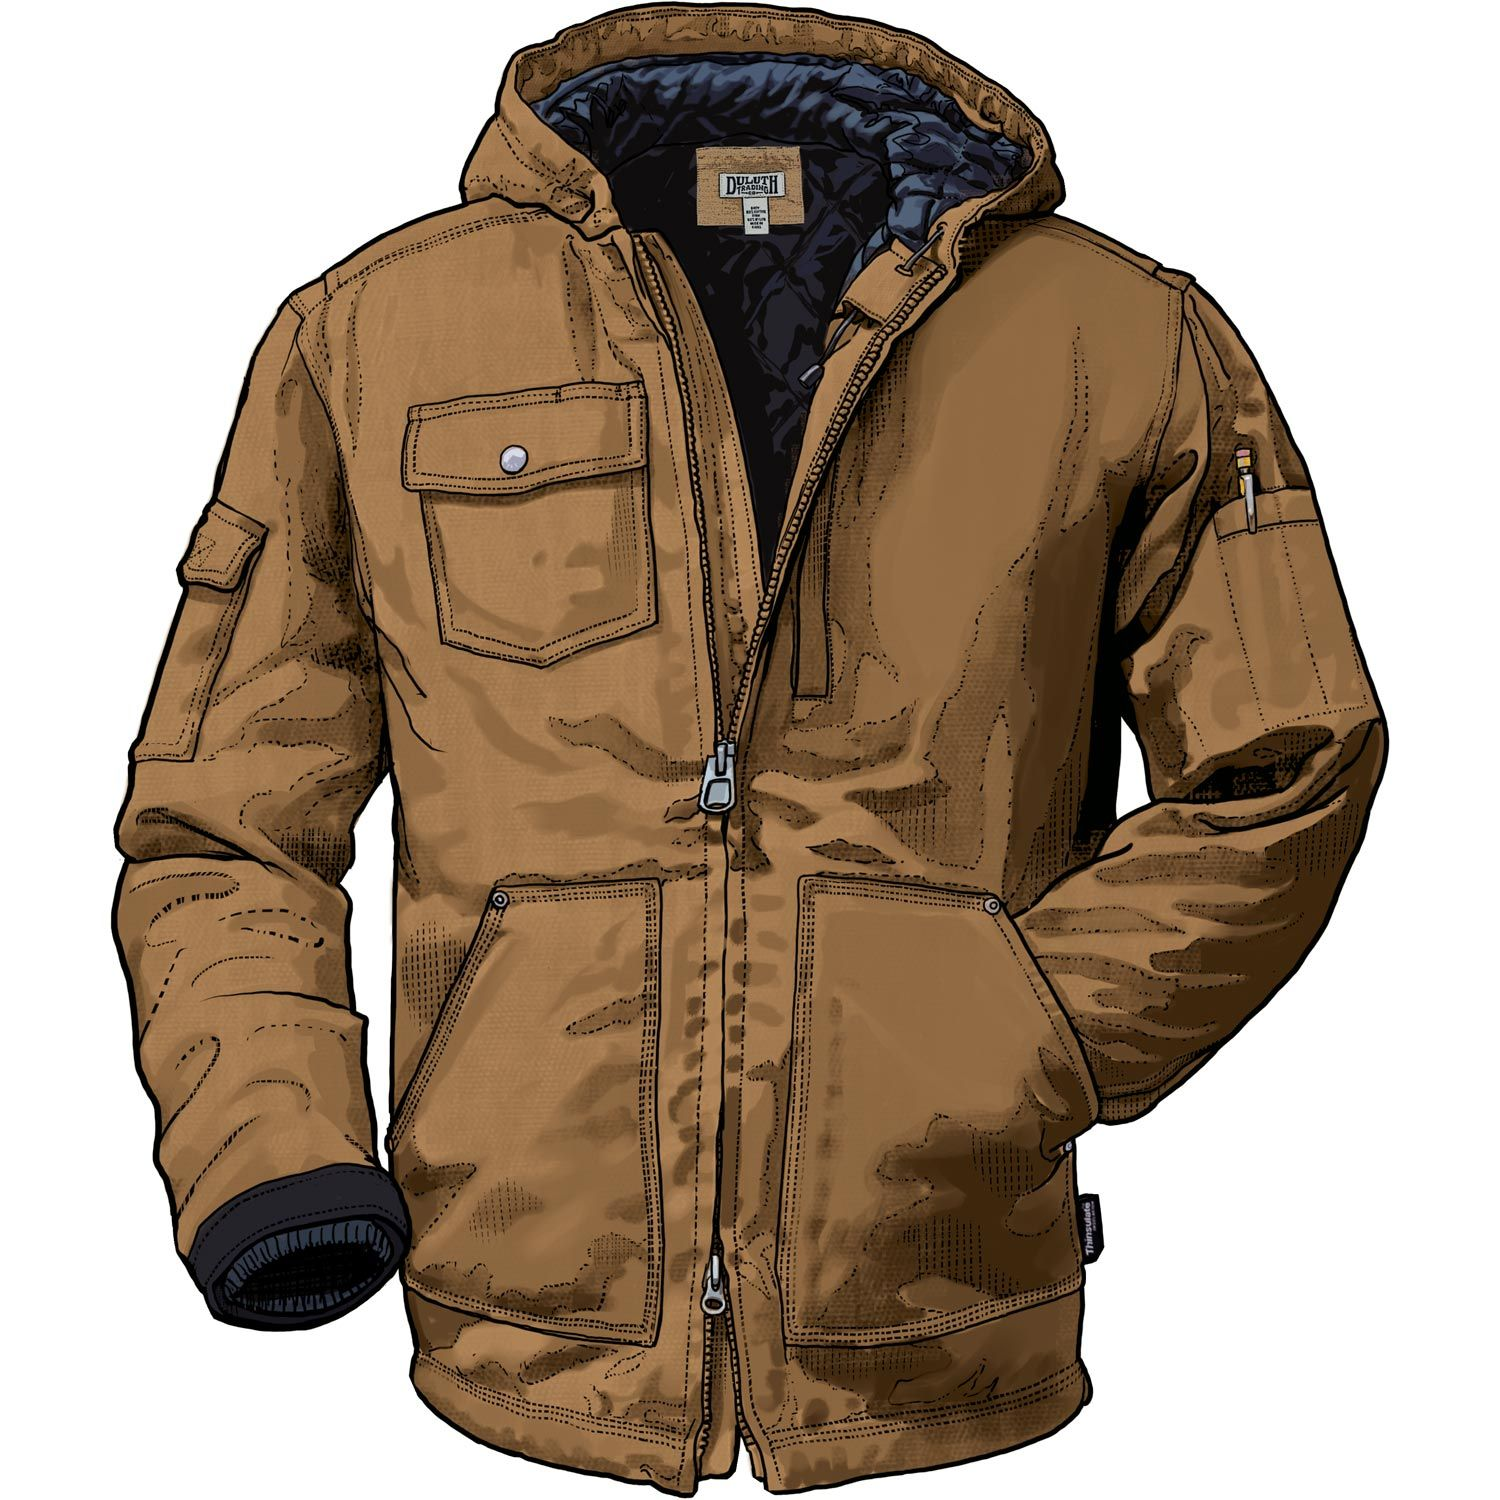 Work jackets don t get more rugged, protective and pocket-packed than the  insulated Superior Hooded Work Coat made with rugged Fire Hose  canvas. c5455fea4b